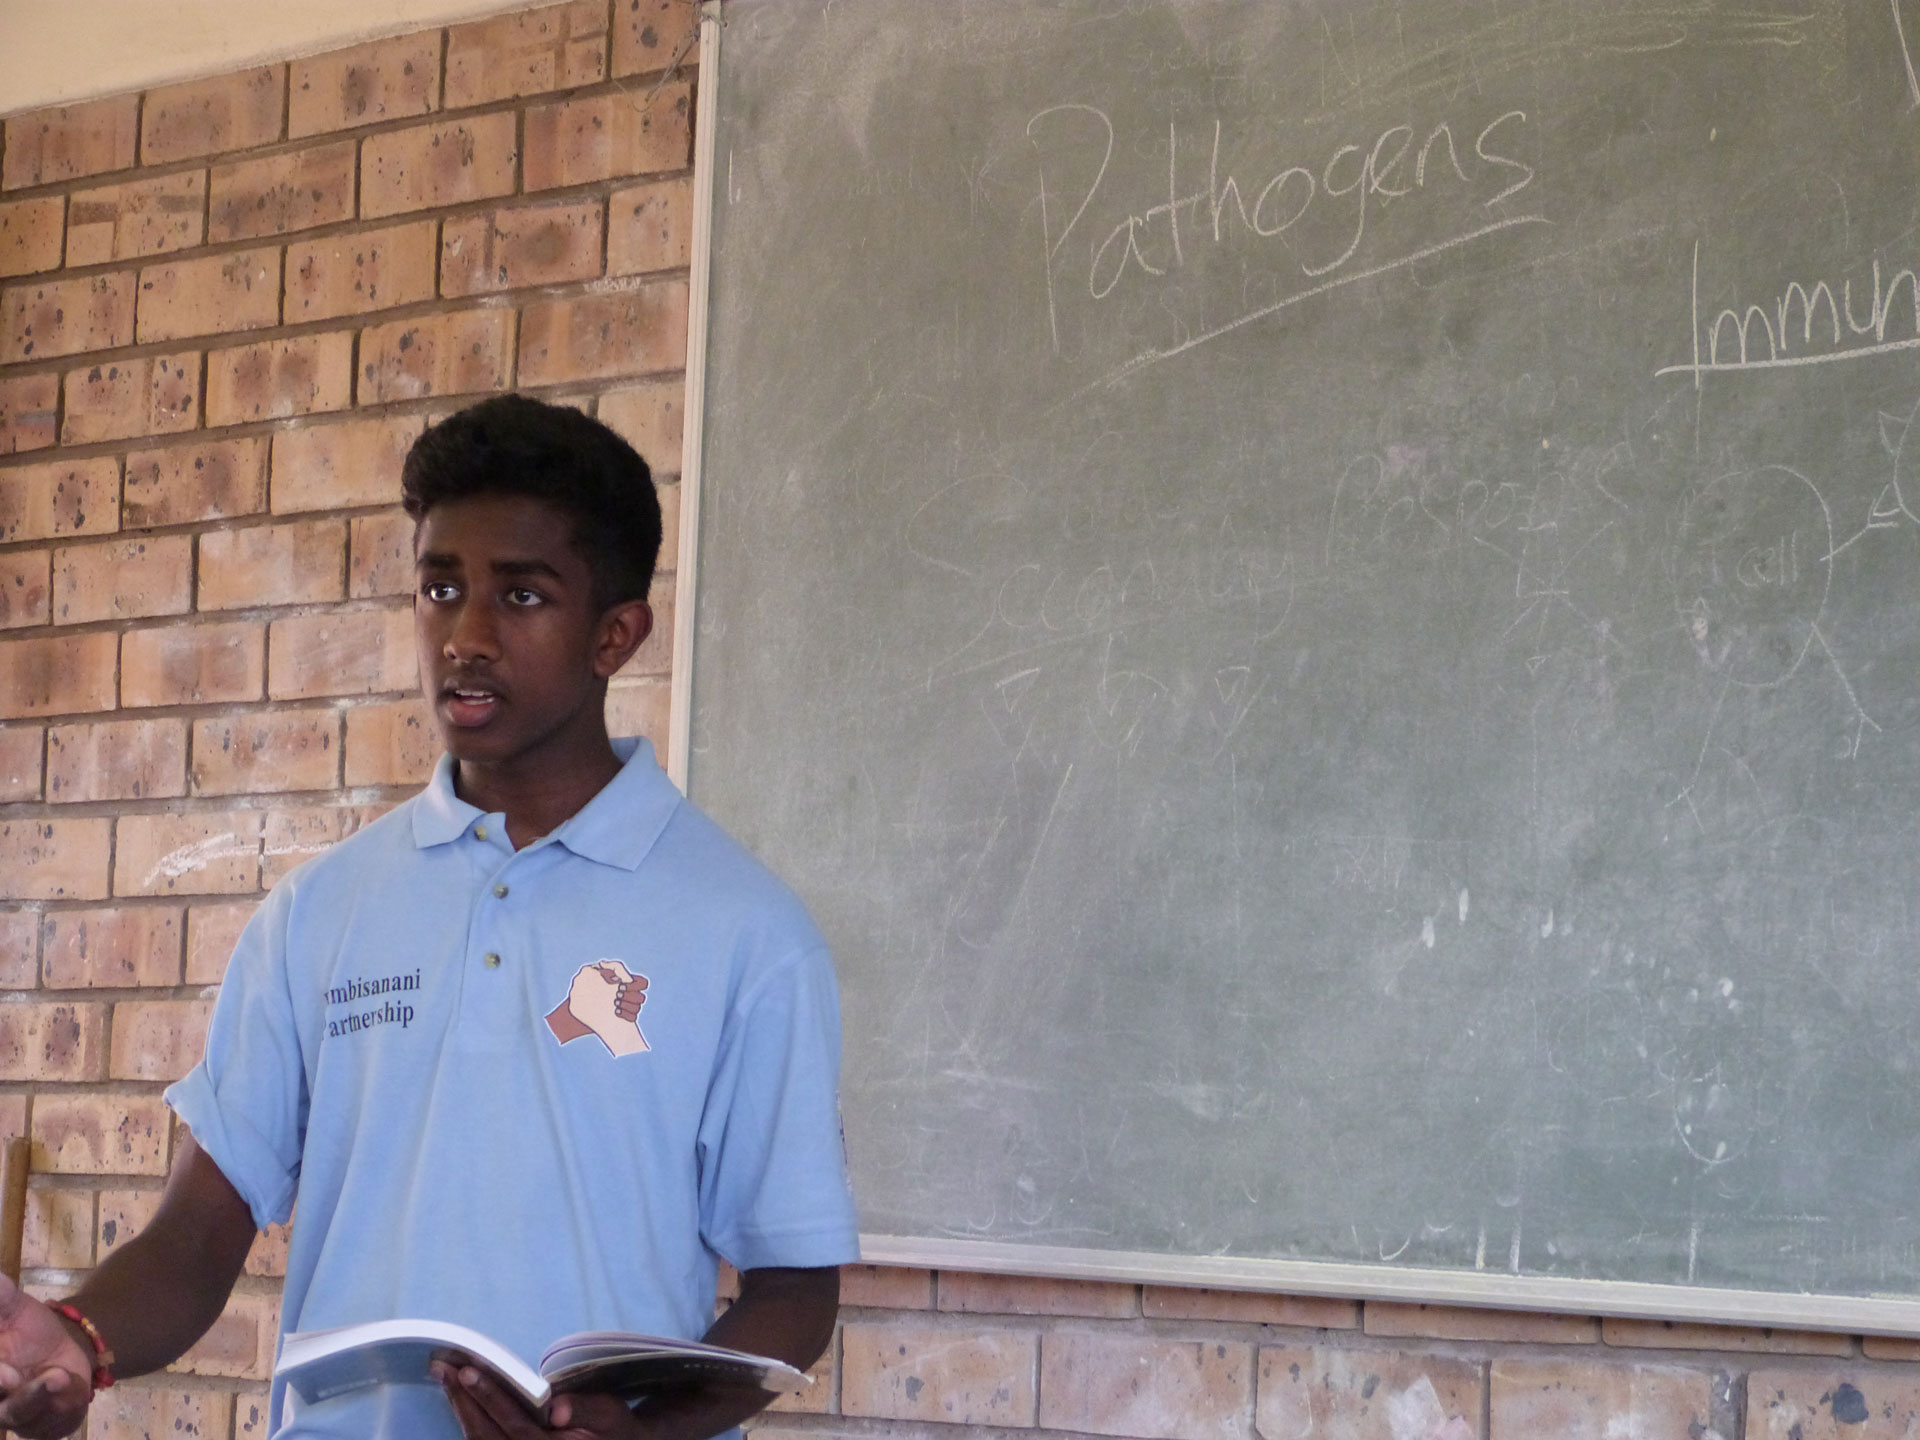 Photo: Kavi teaching science during the 2013 South Africa visit